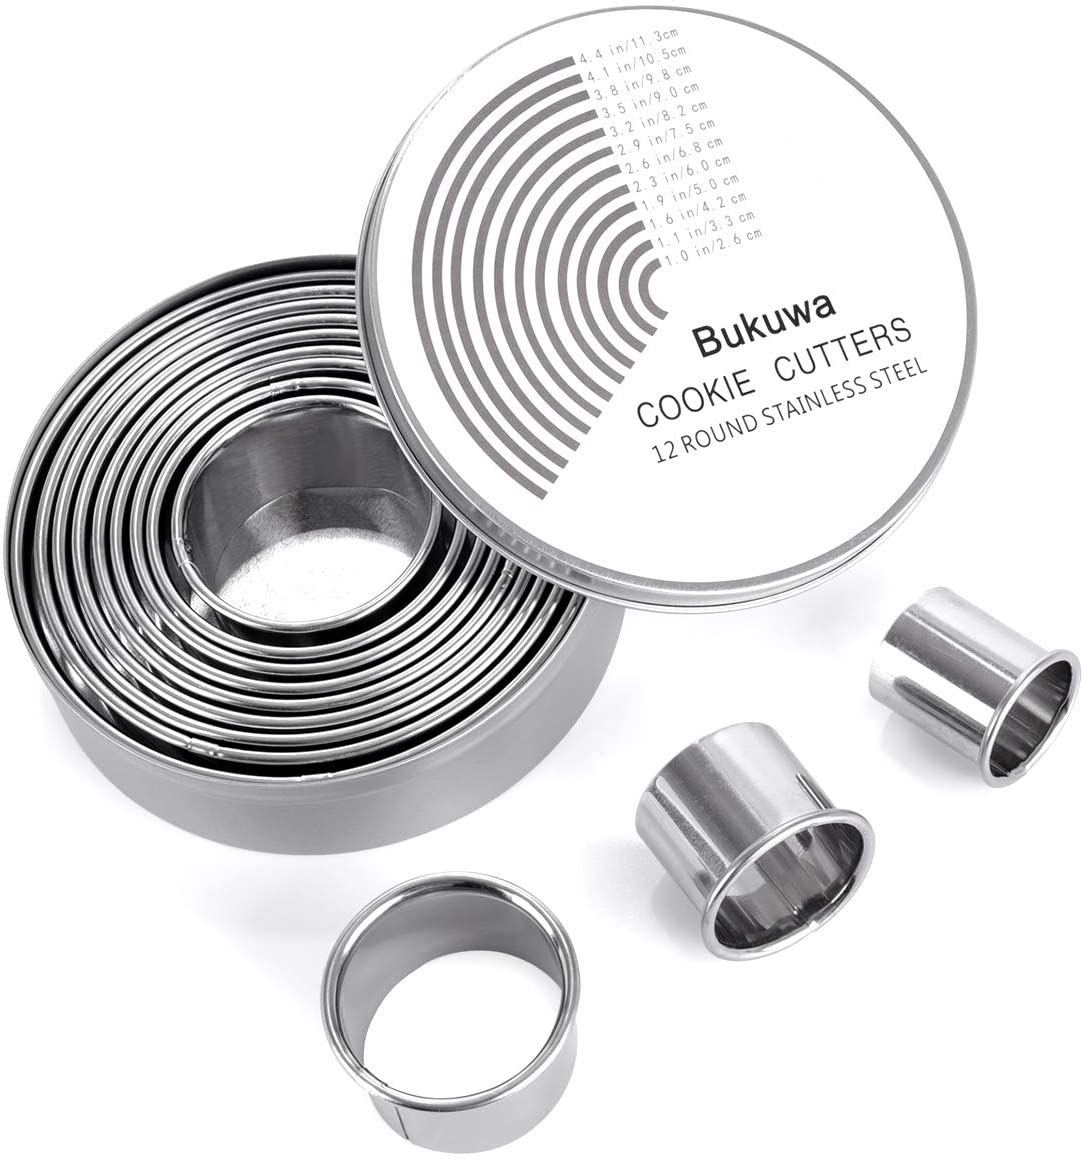 12 Pieces Round Cookie Biscuit Cutter Set,Graduated Circle Pastry Cutters,18//8